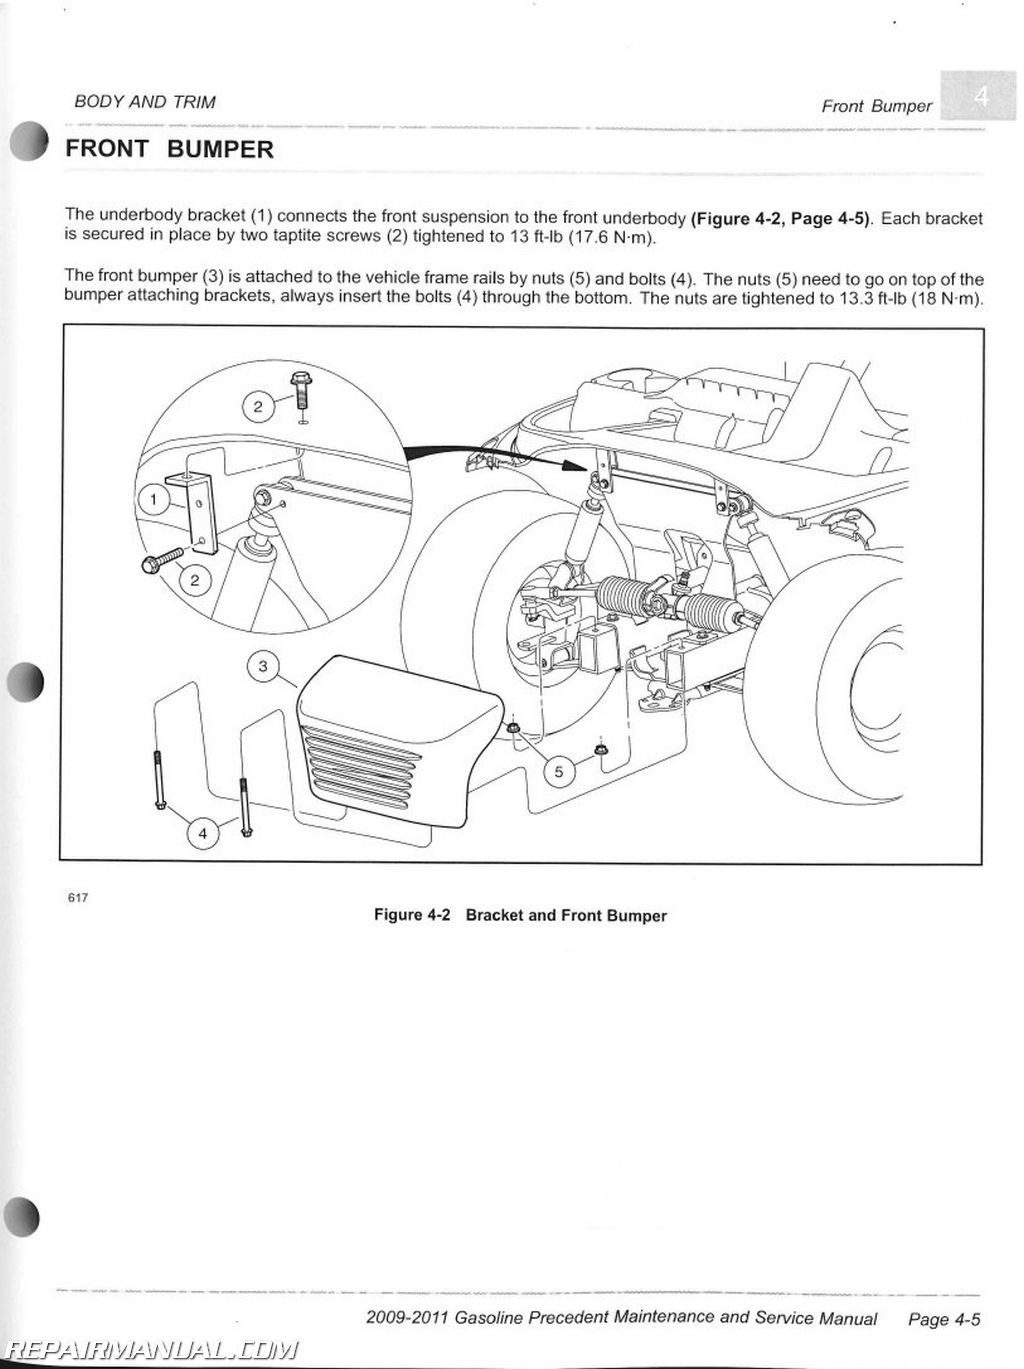 2008 Club Car Wiring Diagram 48 Volt from i1.wp.com